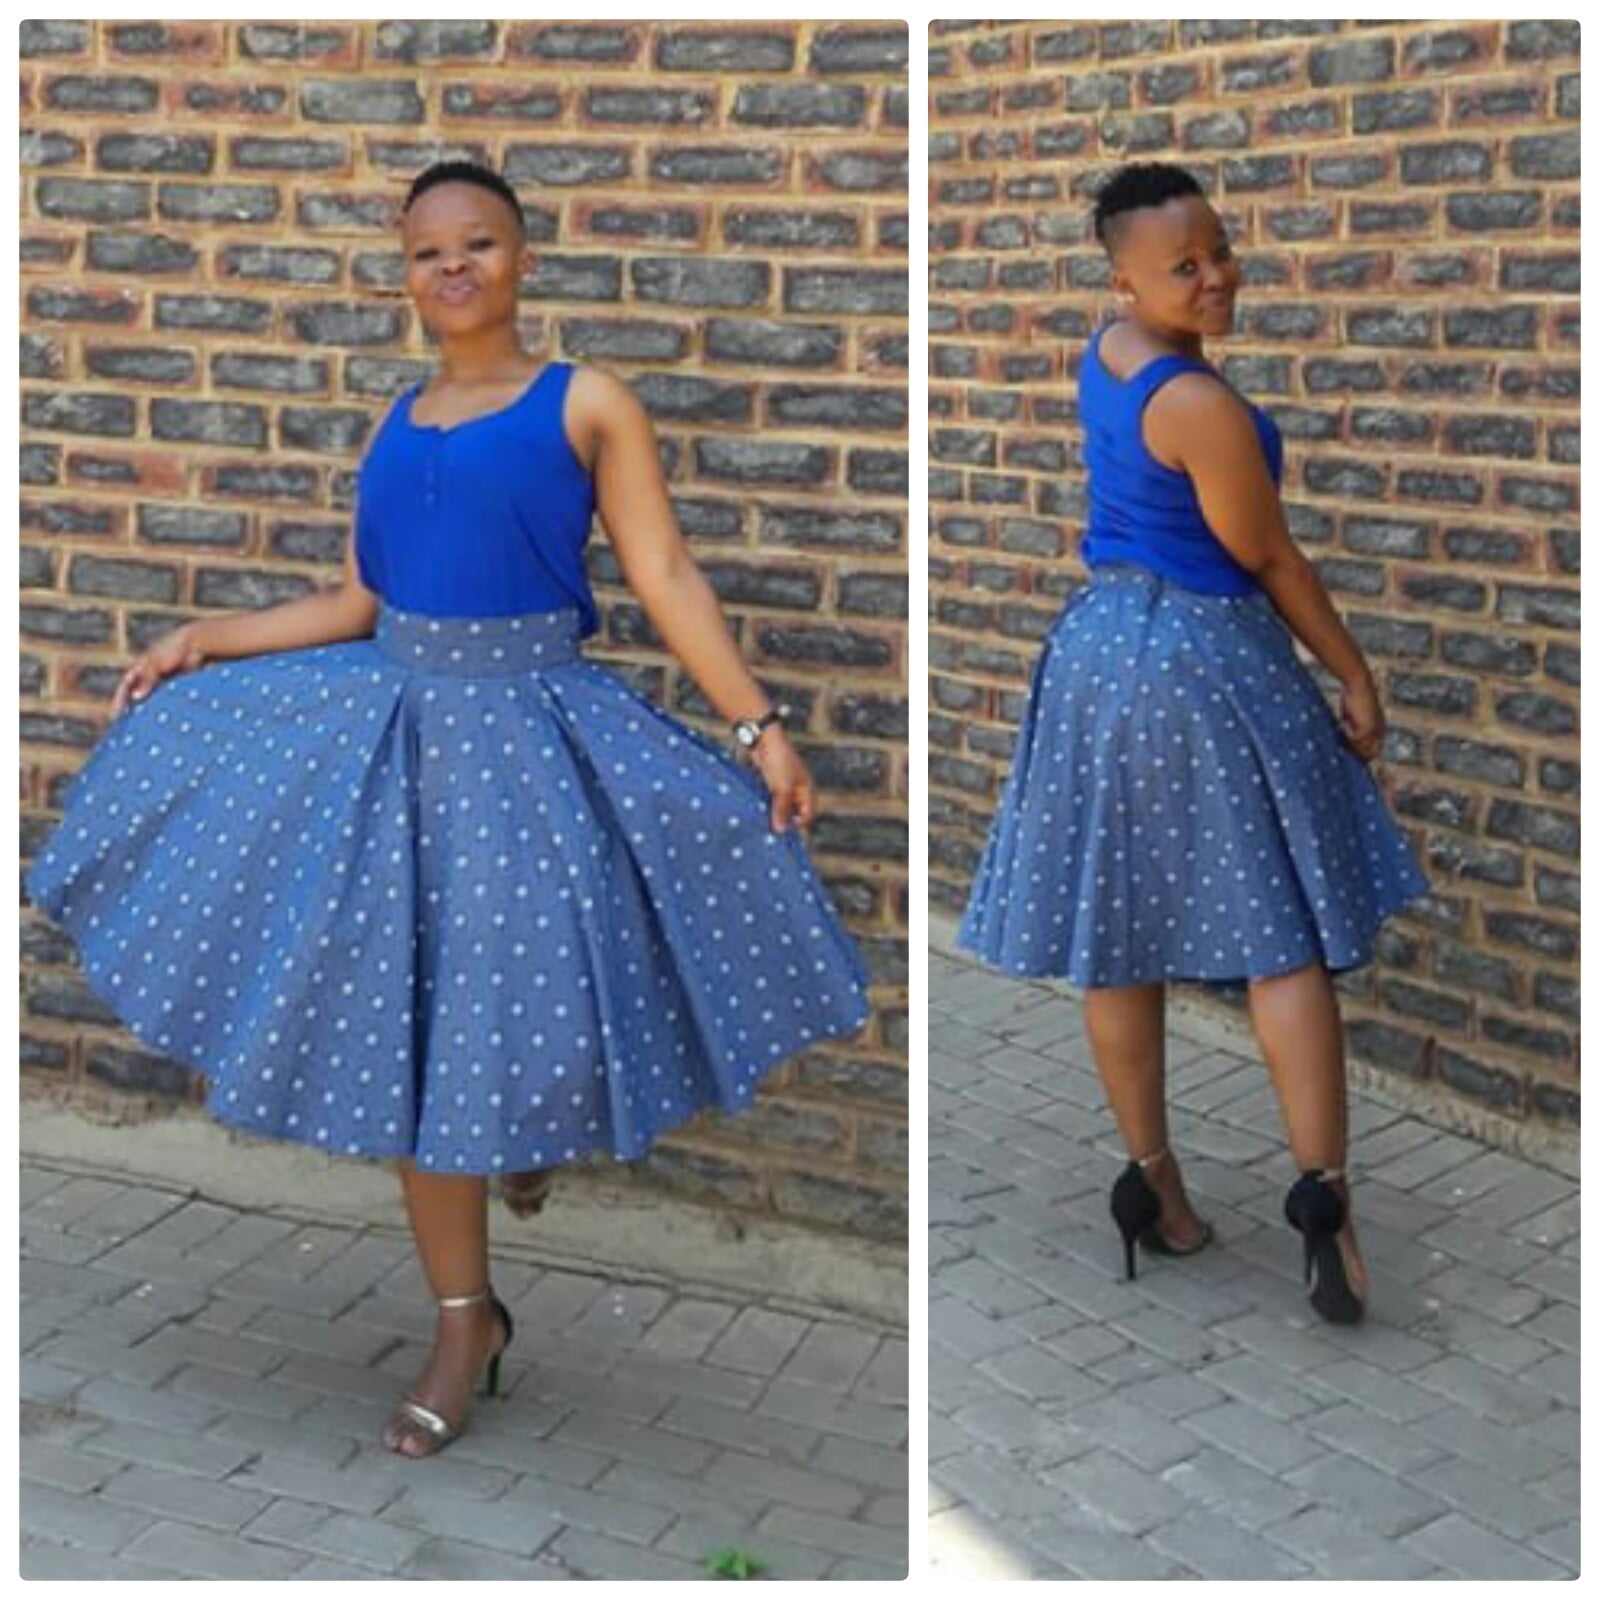 Shweshwe Skirts Pictures: Tswana Lady In Shweshwe Flair Skirt With Blue Top